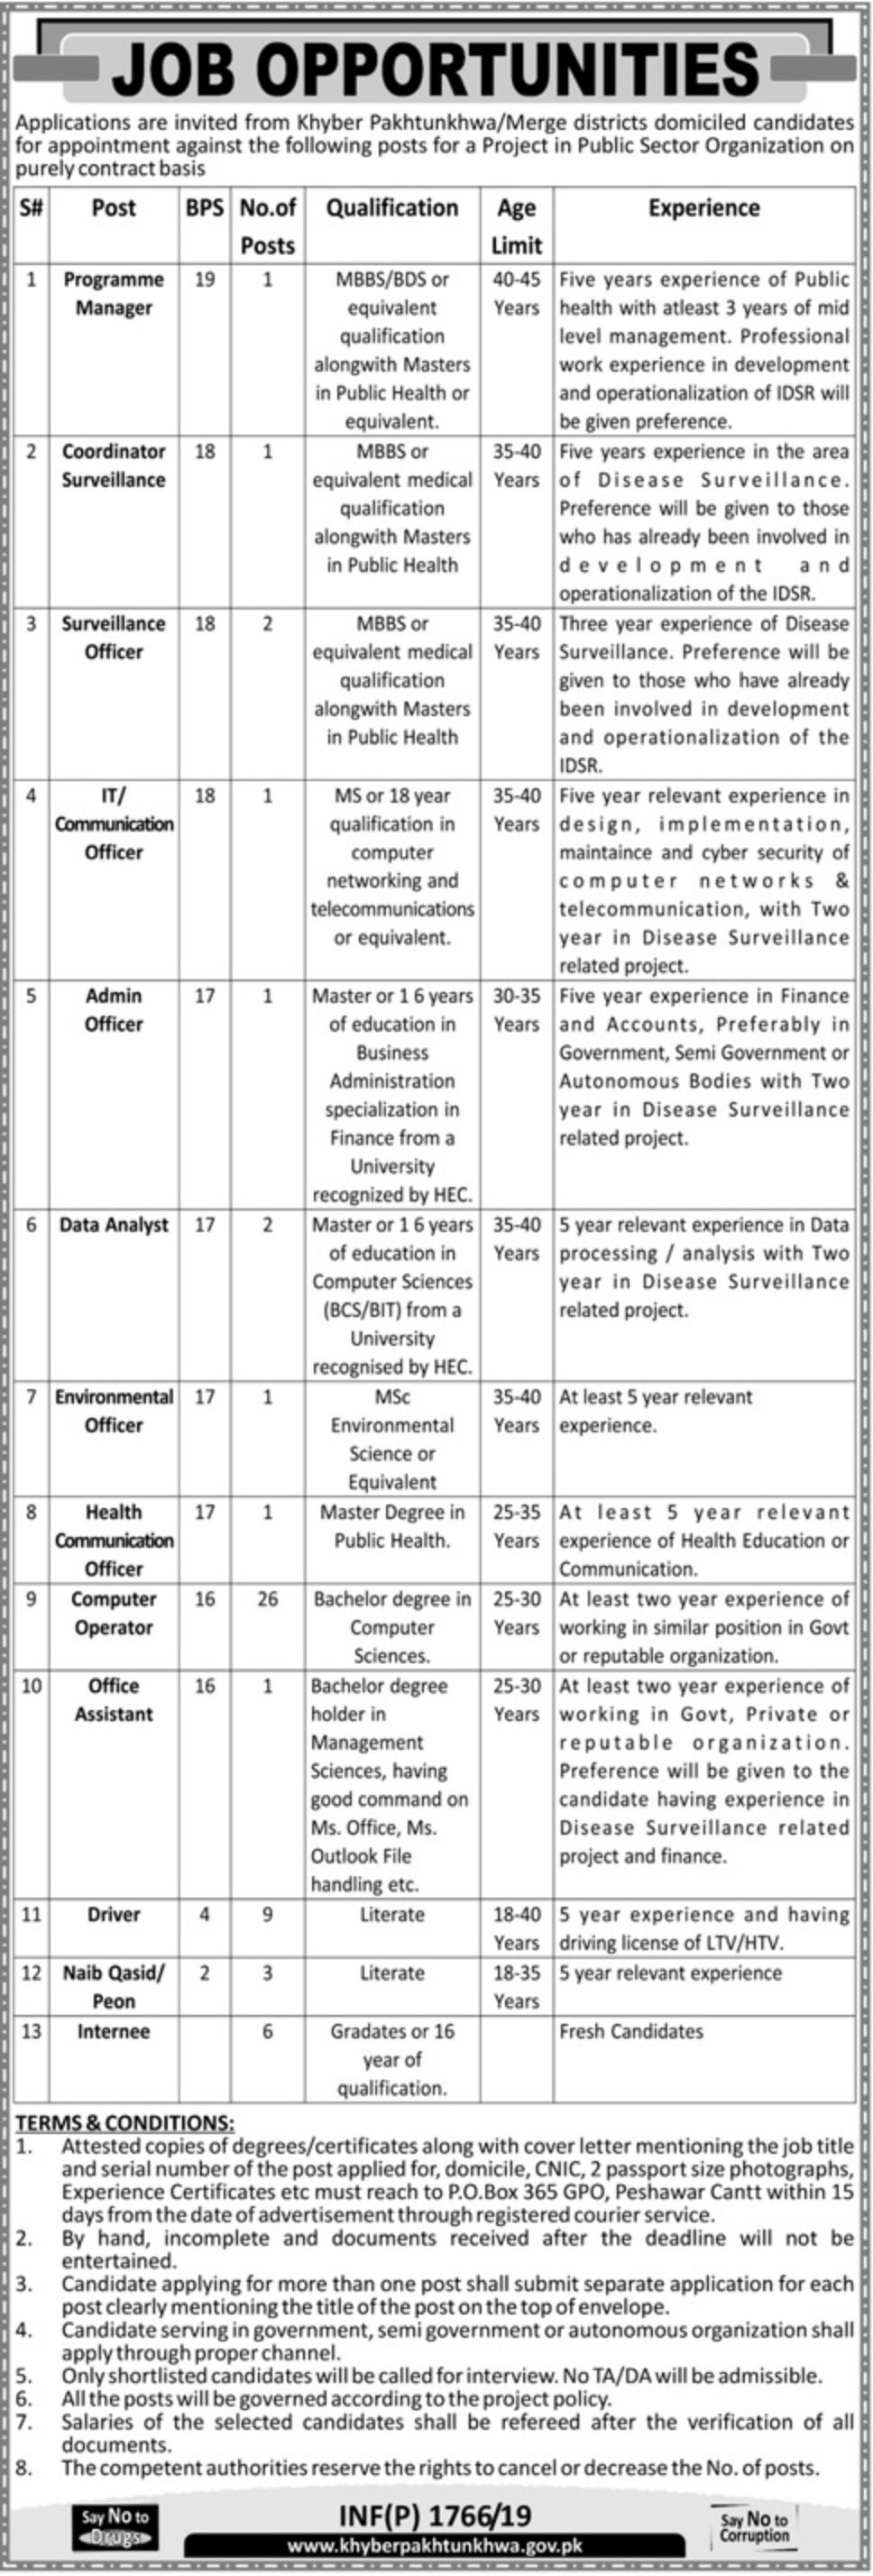 Public Sector Organization Jobs 2019 P.O.Box 365 Peshawar